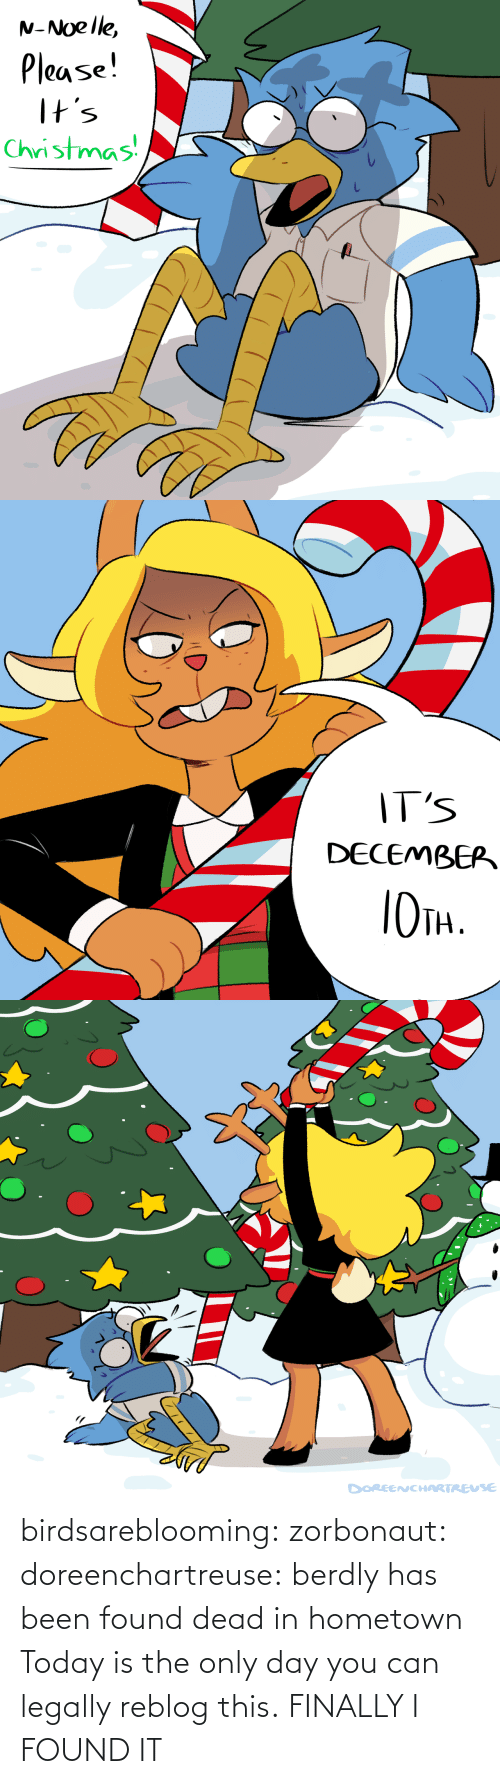 Found It: N-Noelle,  Please!  I+s  Christmas   IT'S  DECEMBEP  TH.   DOREENCHARTREUSE birdsareblooming:  zorbonaut:  doreenchartreuse: berdly has been found dead in hometown Today is the only day you can legally reblog this.  FINALLY I FOUND IT